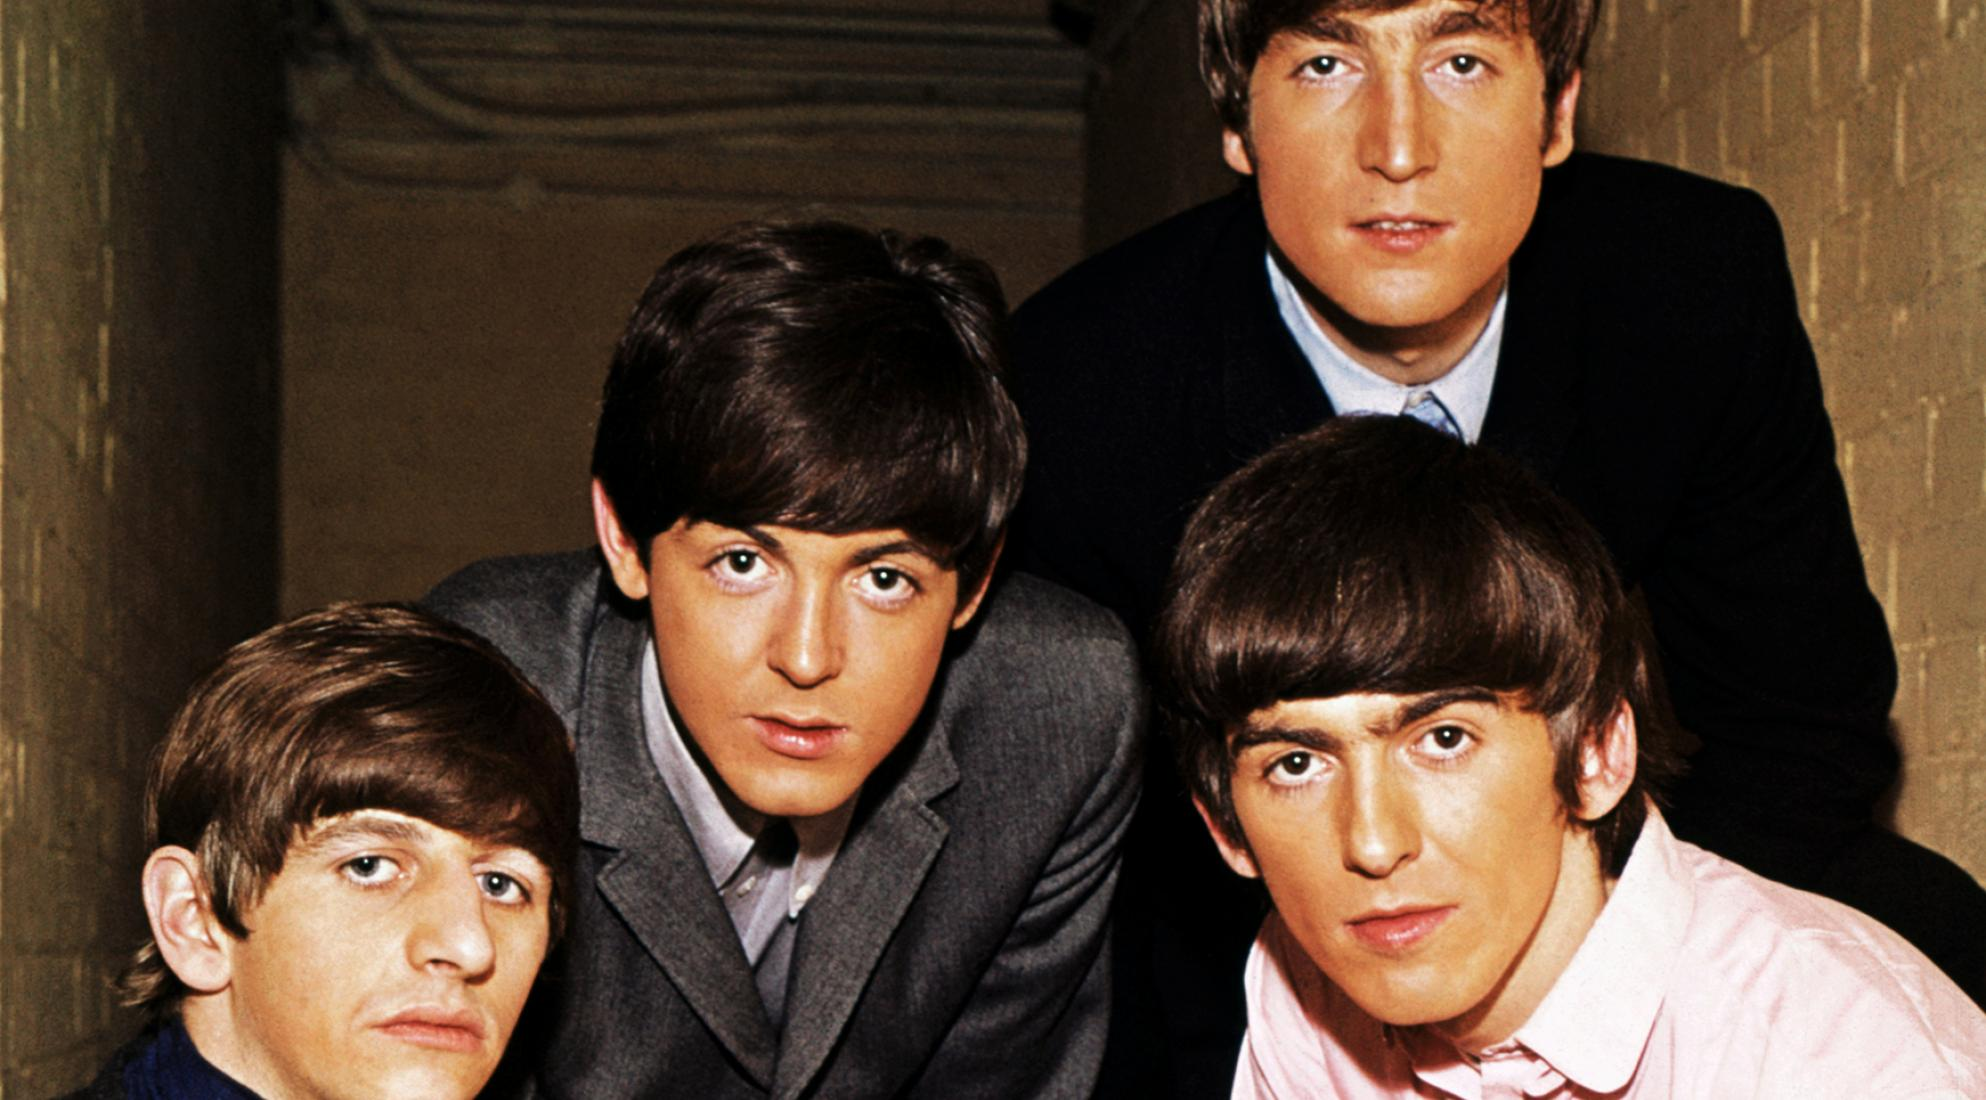 beatles-hero-514890404.jpg